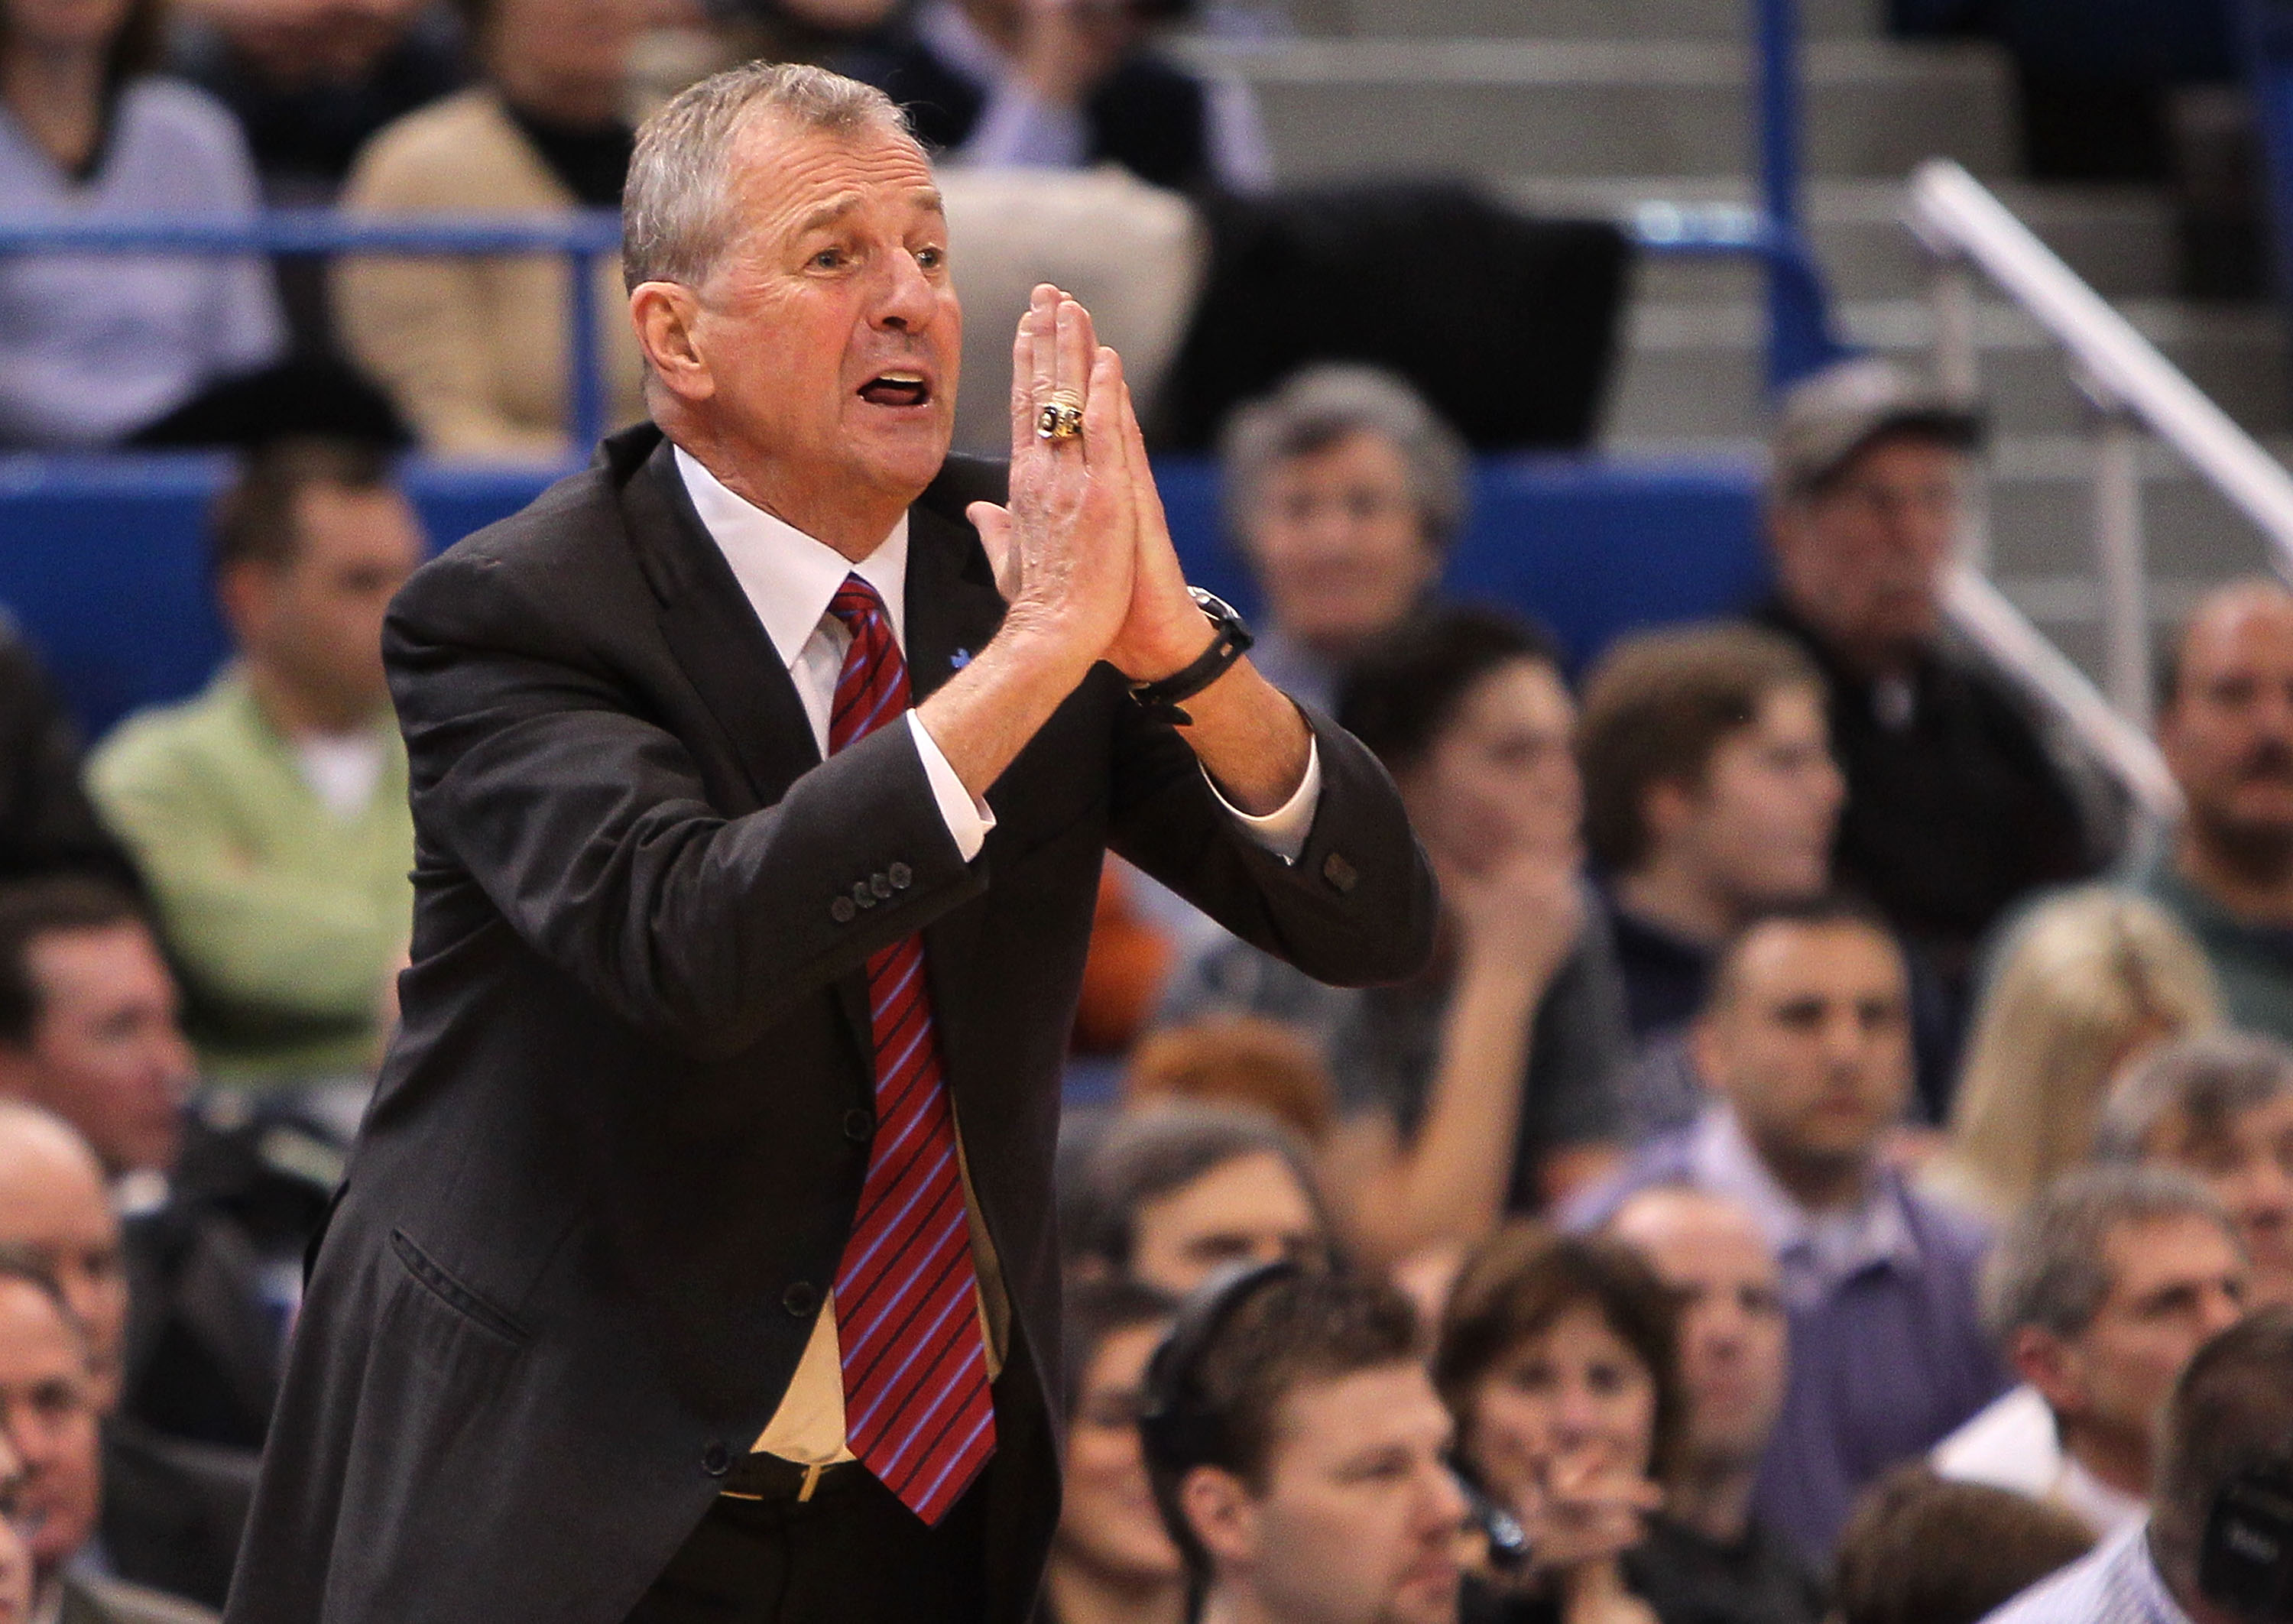 HARTFORD, CT - FEBRUARY 13: Coach Jim Calhoun of the Connecticut Huskies reacts during a game against the Cincinnati Bearcats at the XL Center on February 13, 2010 in Hartford, Connecticut. (Photo by Jim Rogash/Getty Images)